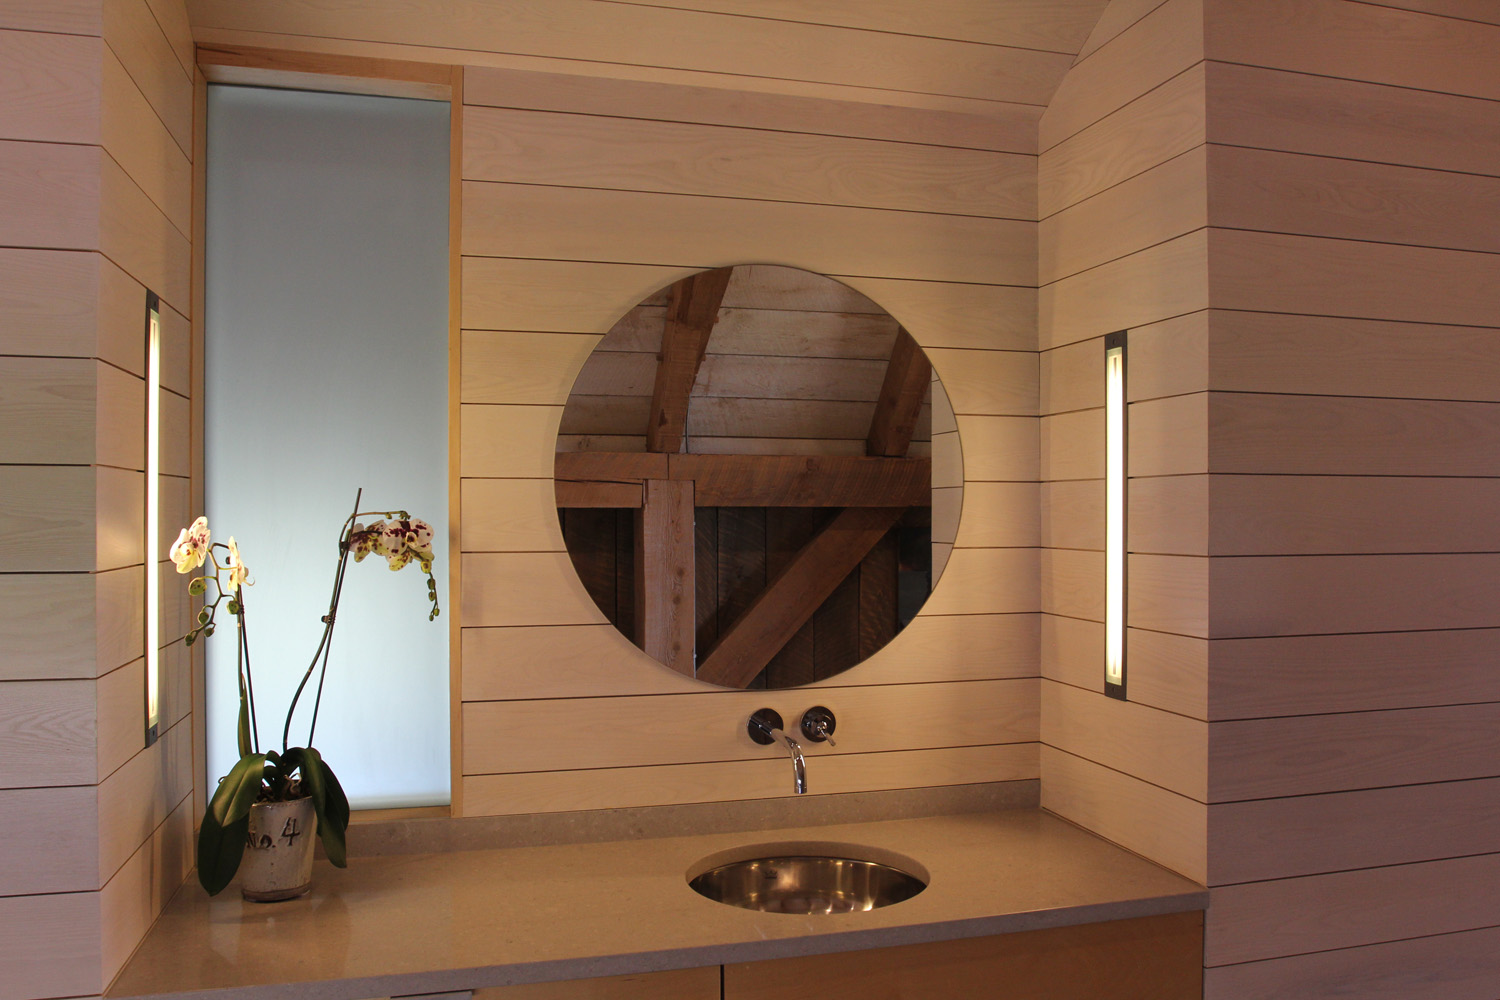 houdinidesign_ARCHITECTS_Ritchie-Gidney_Residence_Sandy-Cove_Digby_Acadian+Timber_Frame_Modern_Renovation_Washroom_Vanity.jpg